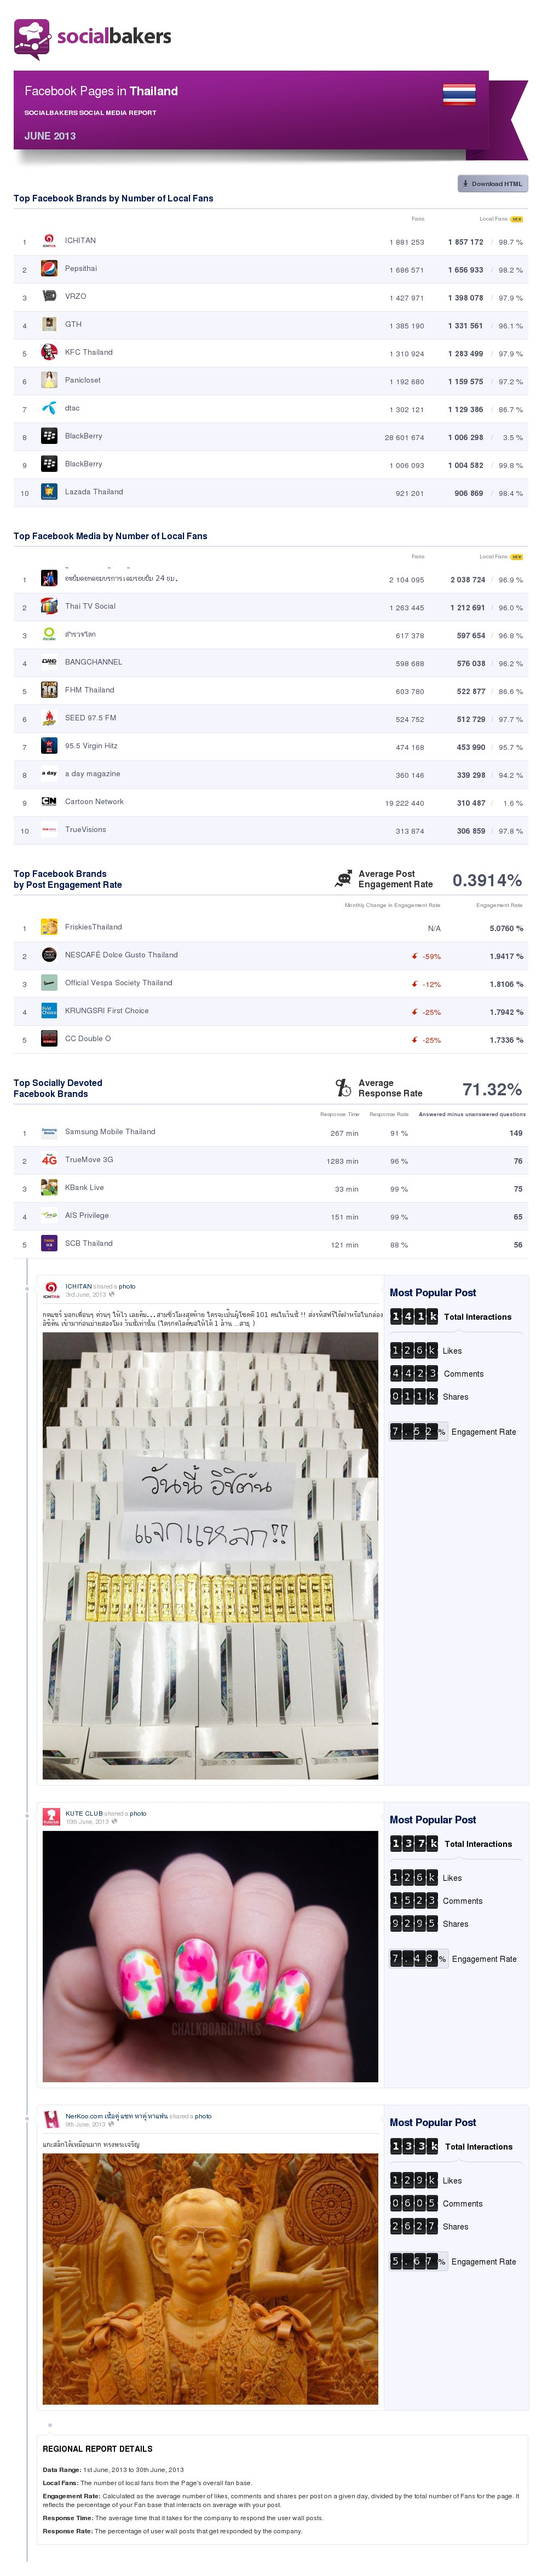 june-2013-social-media-report-facebook-pages-in-thailand